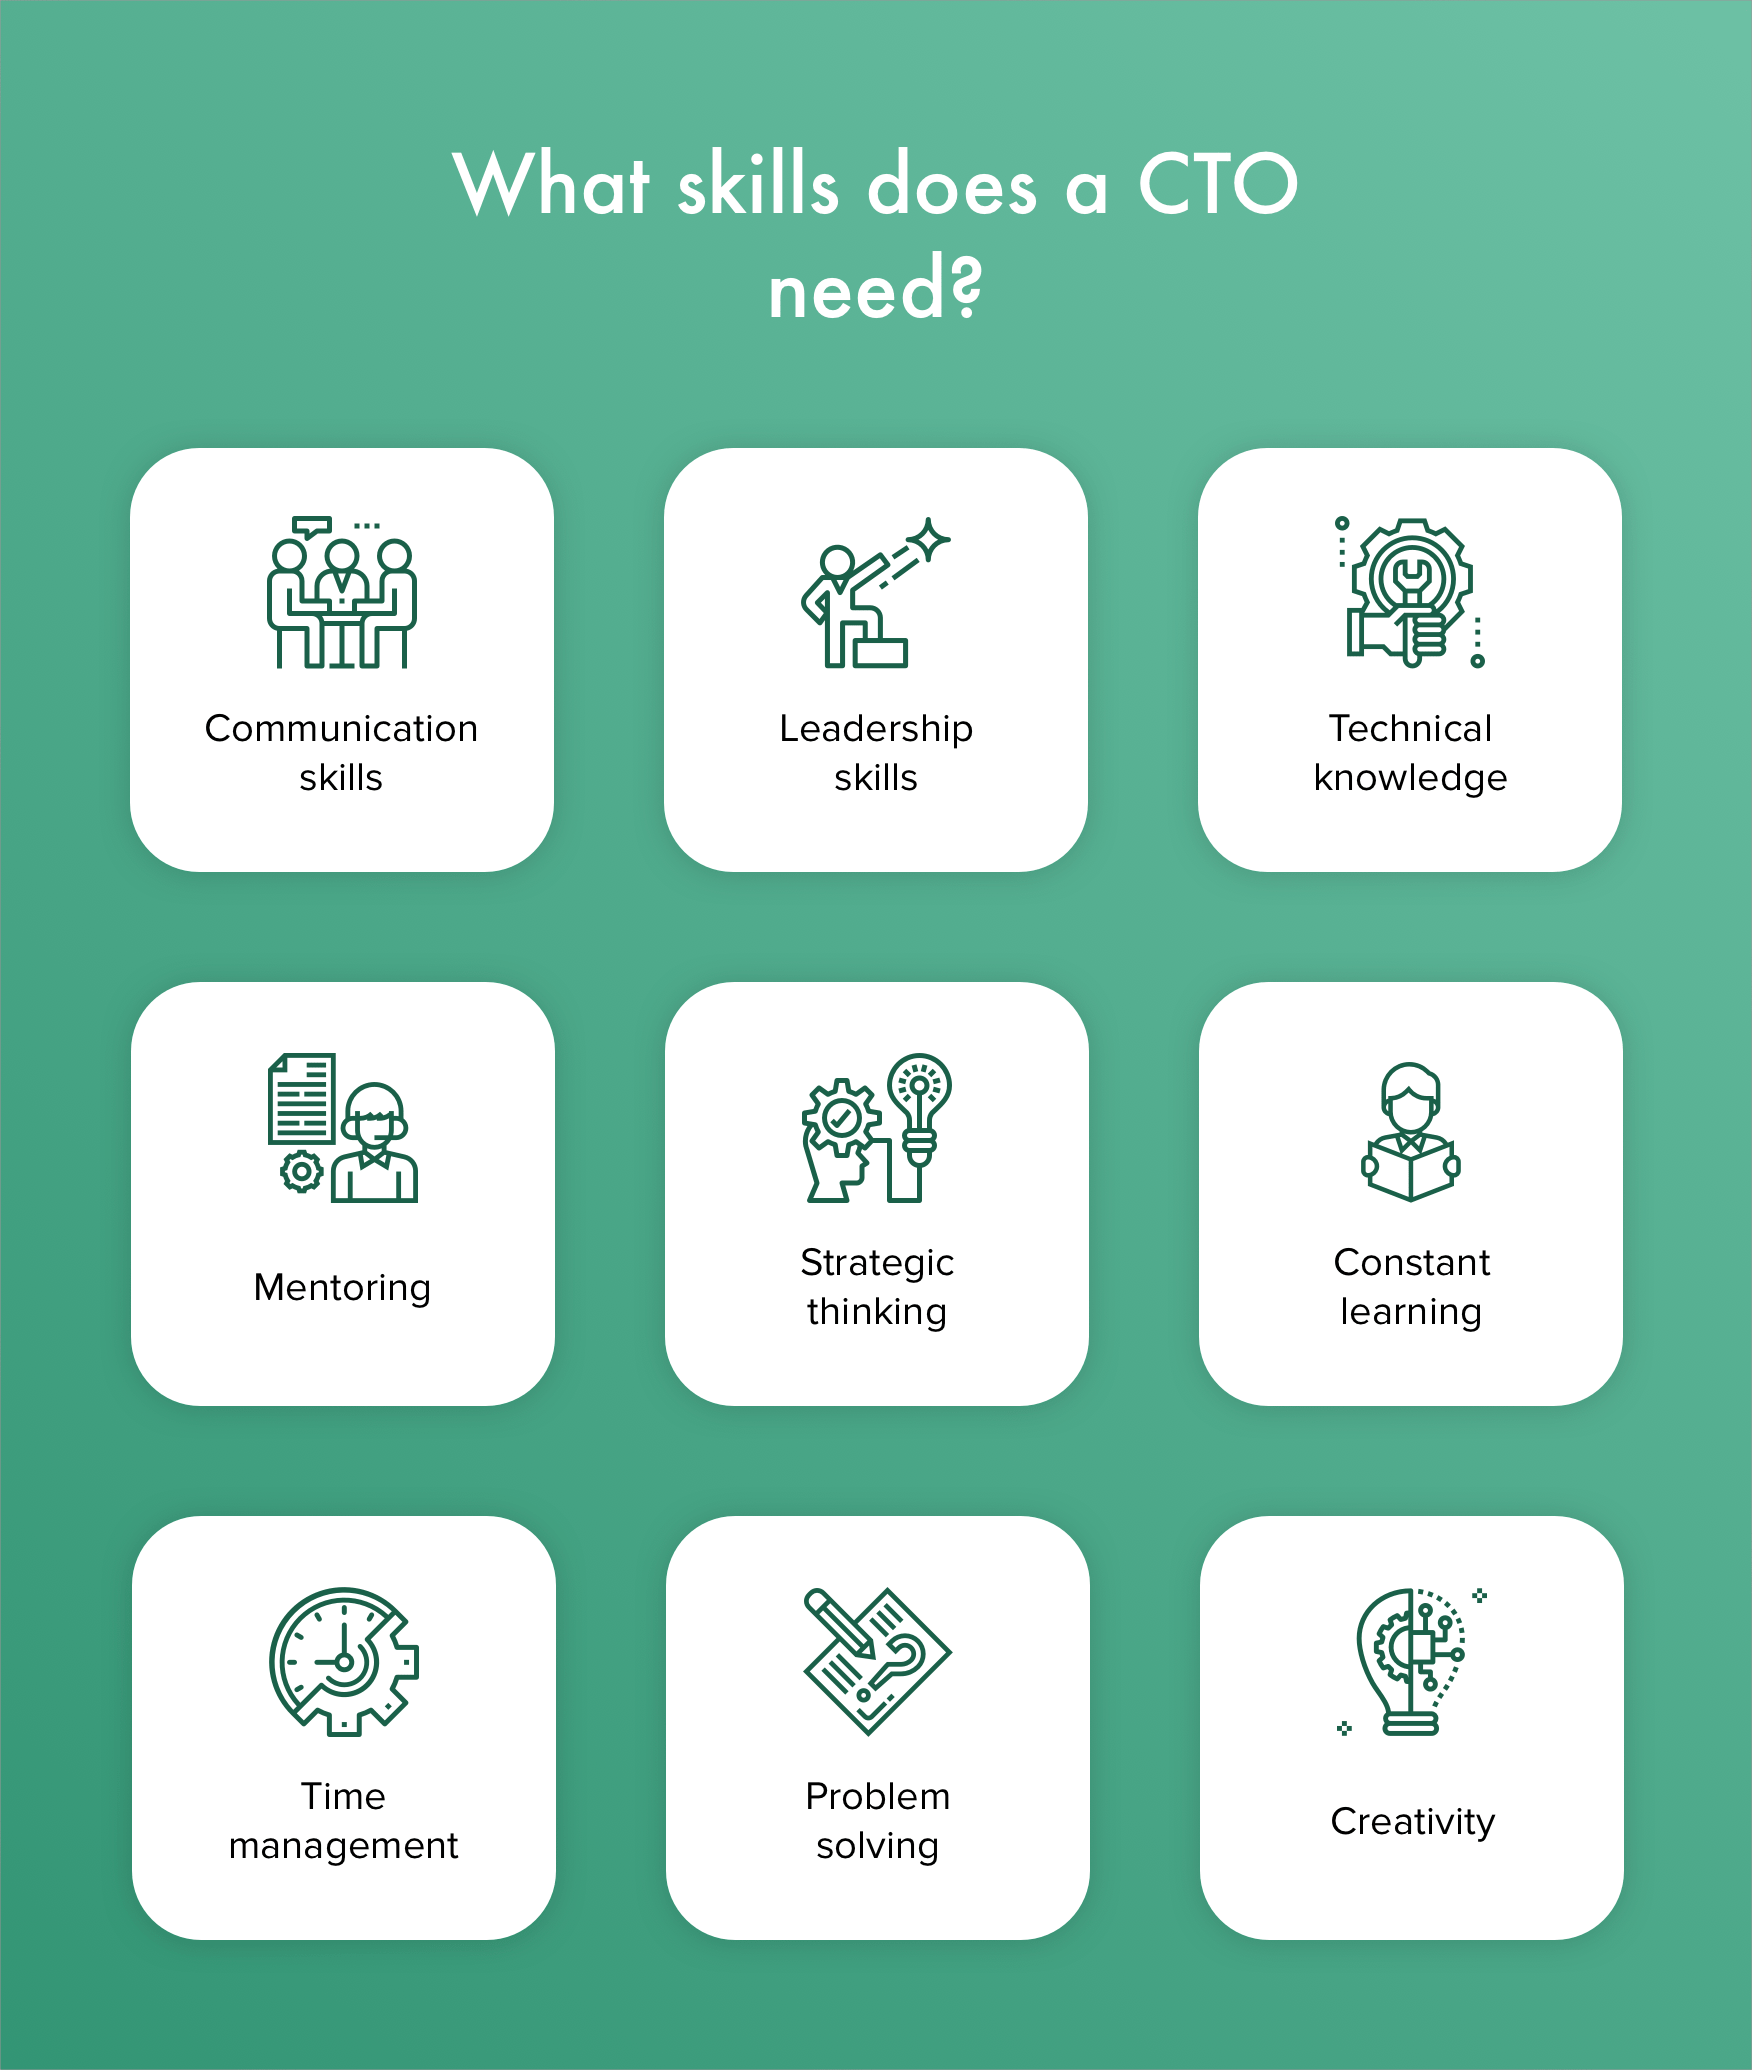 The required skill set of a CTO